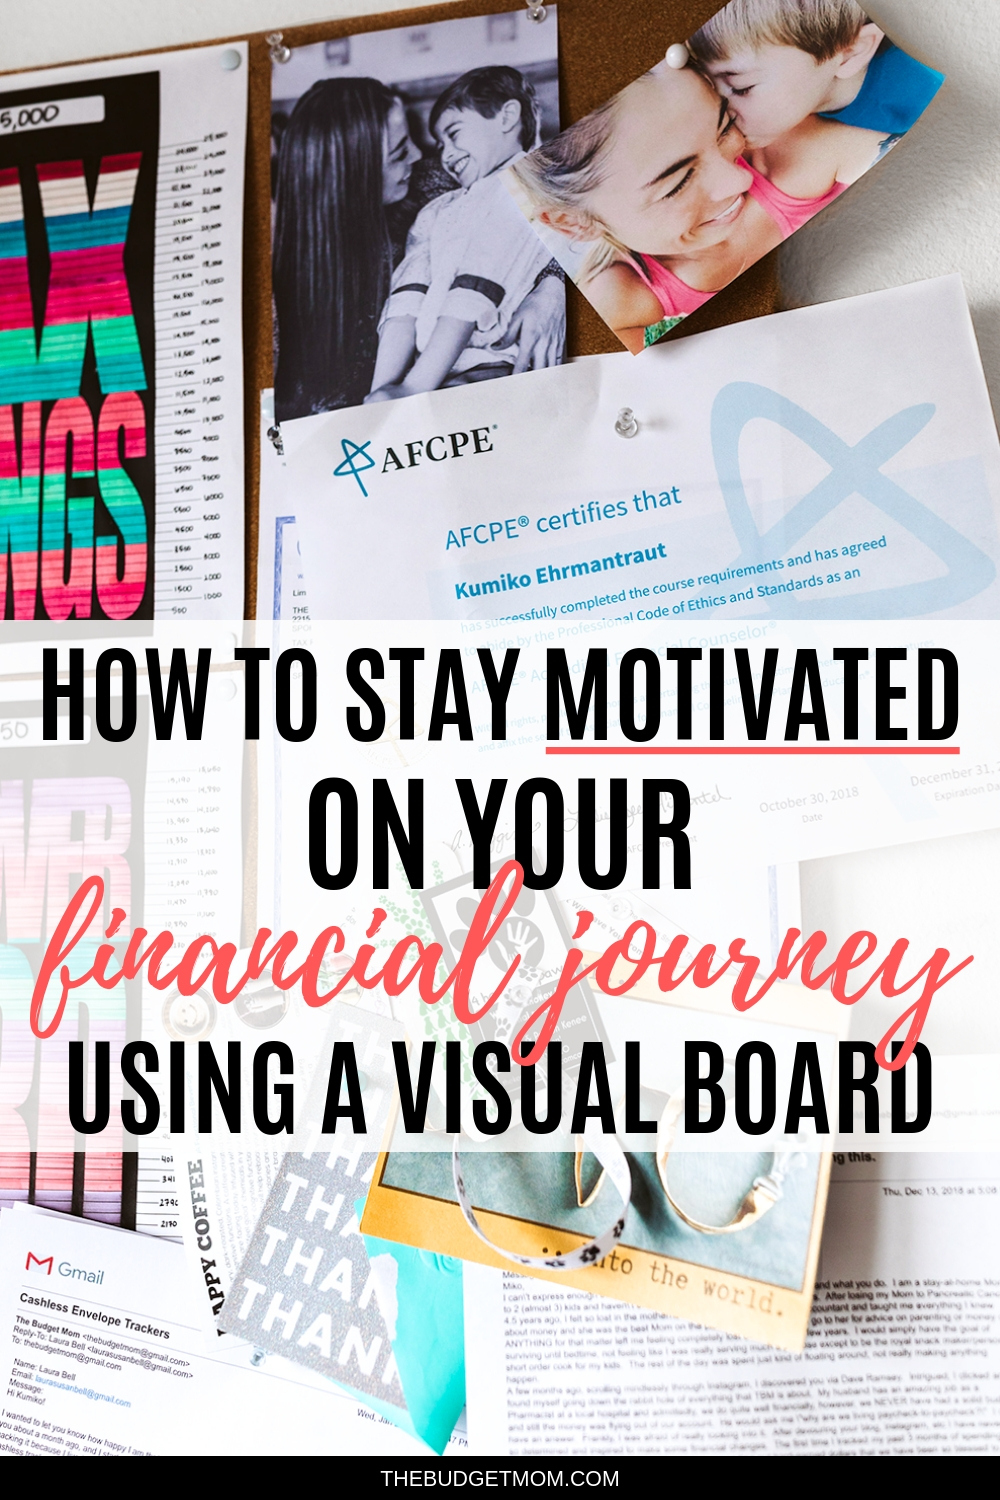 Your financial vision board can be the perfect tool for keeping you on track with your spending and saving goals. Seeing is believing, and this continual reminder in your line of sight will keep you motivated and focused on achieving your new reality. #debttips #savemoney #budget #visualboard